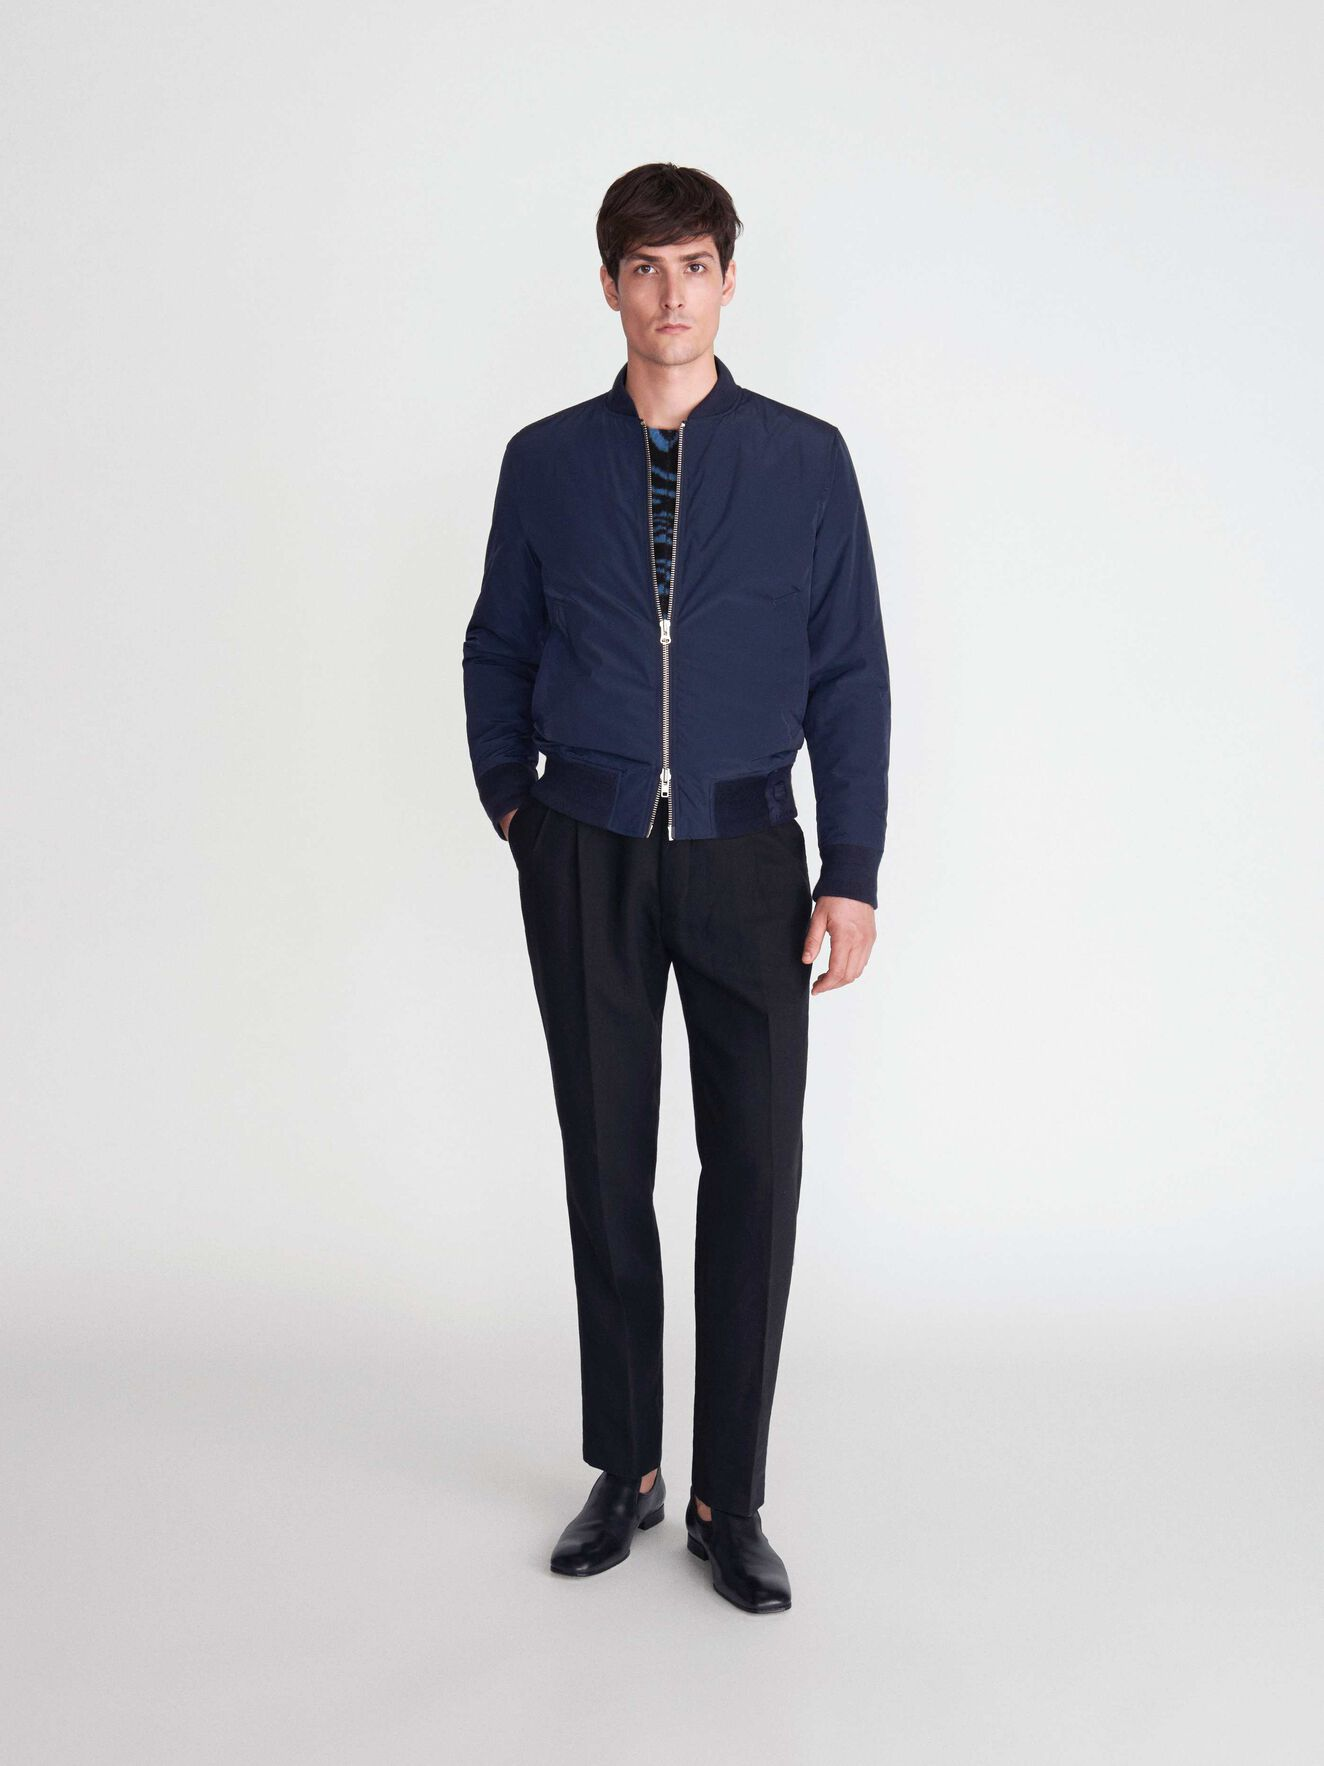 Orland Jacket in Blue from Tiger of Sweden